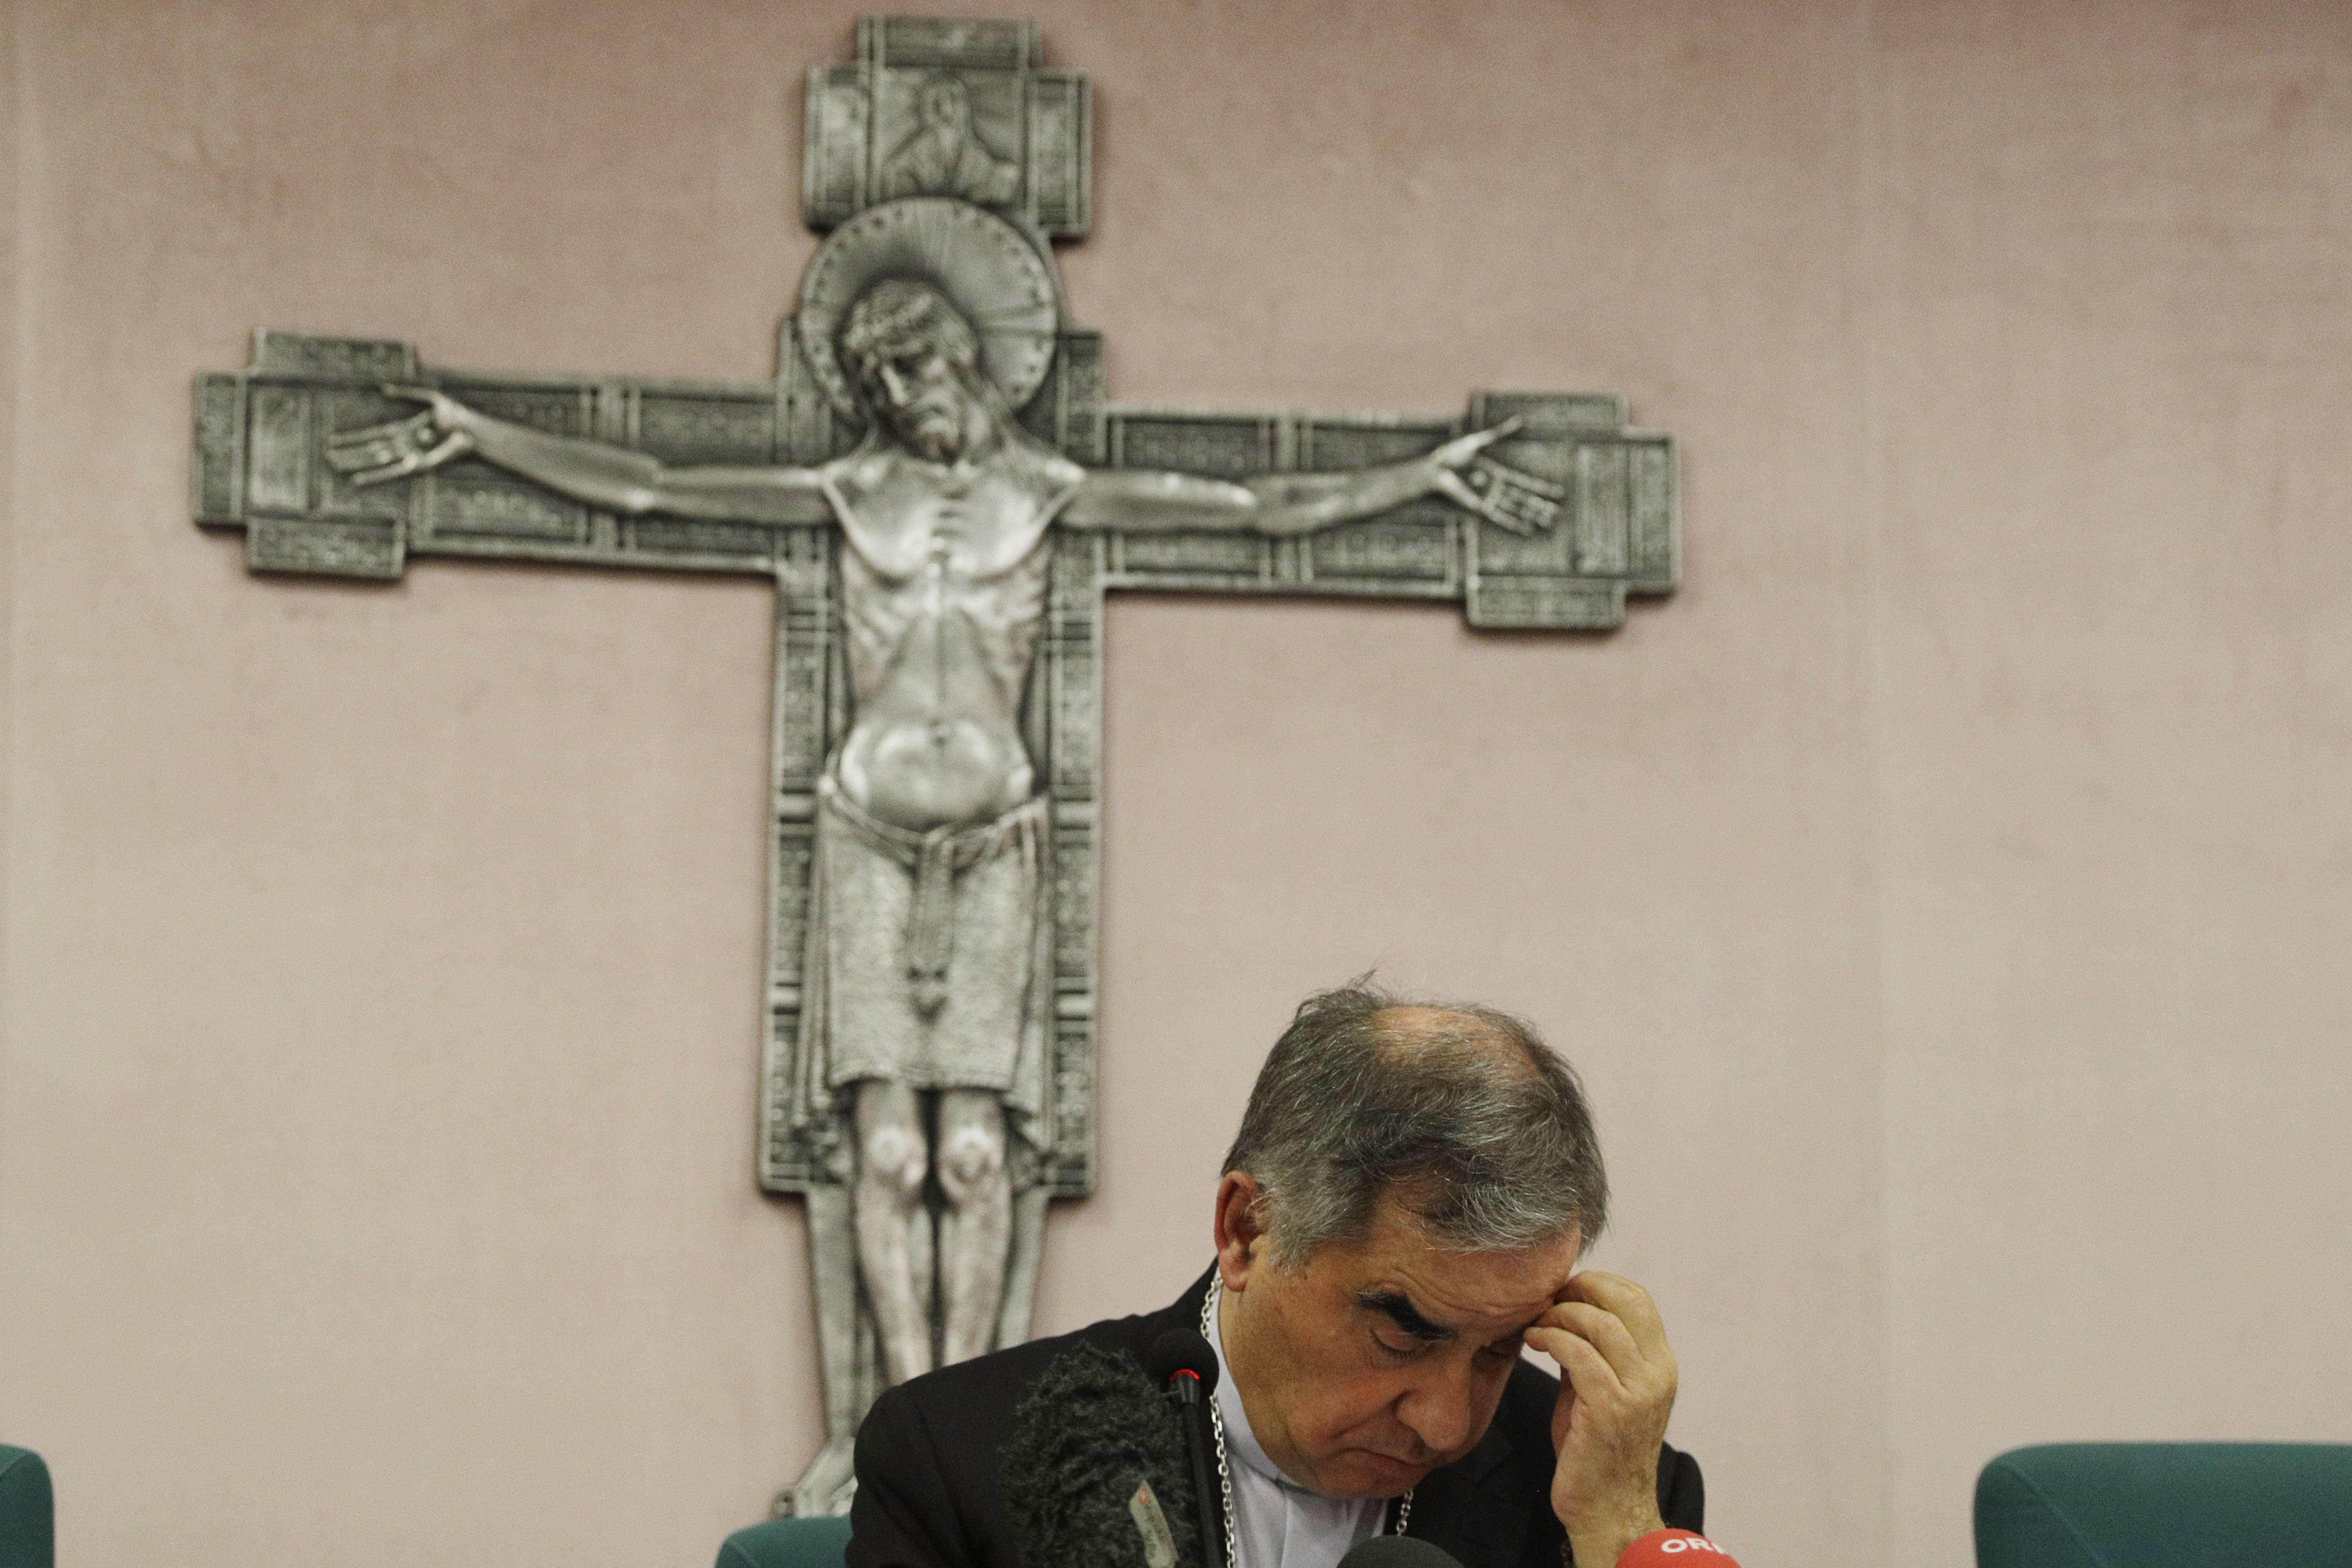 Cardinal Angelo Becciu looks down as he meets the media during a press conference in Rome, Italy on July 3, 2021.